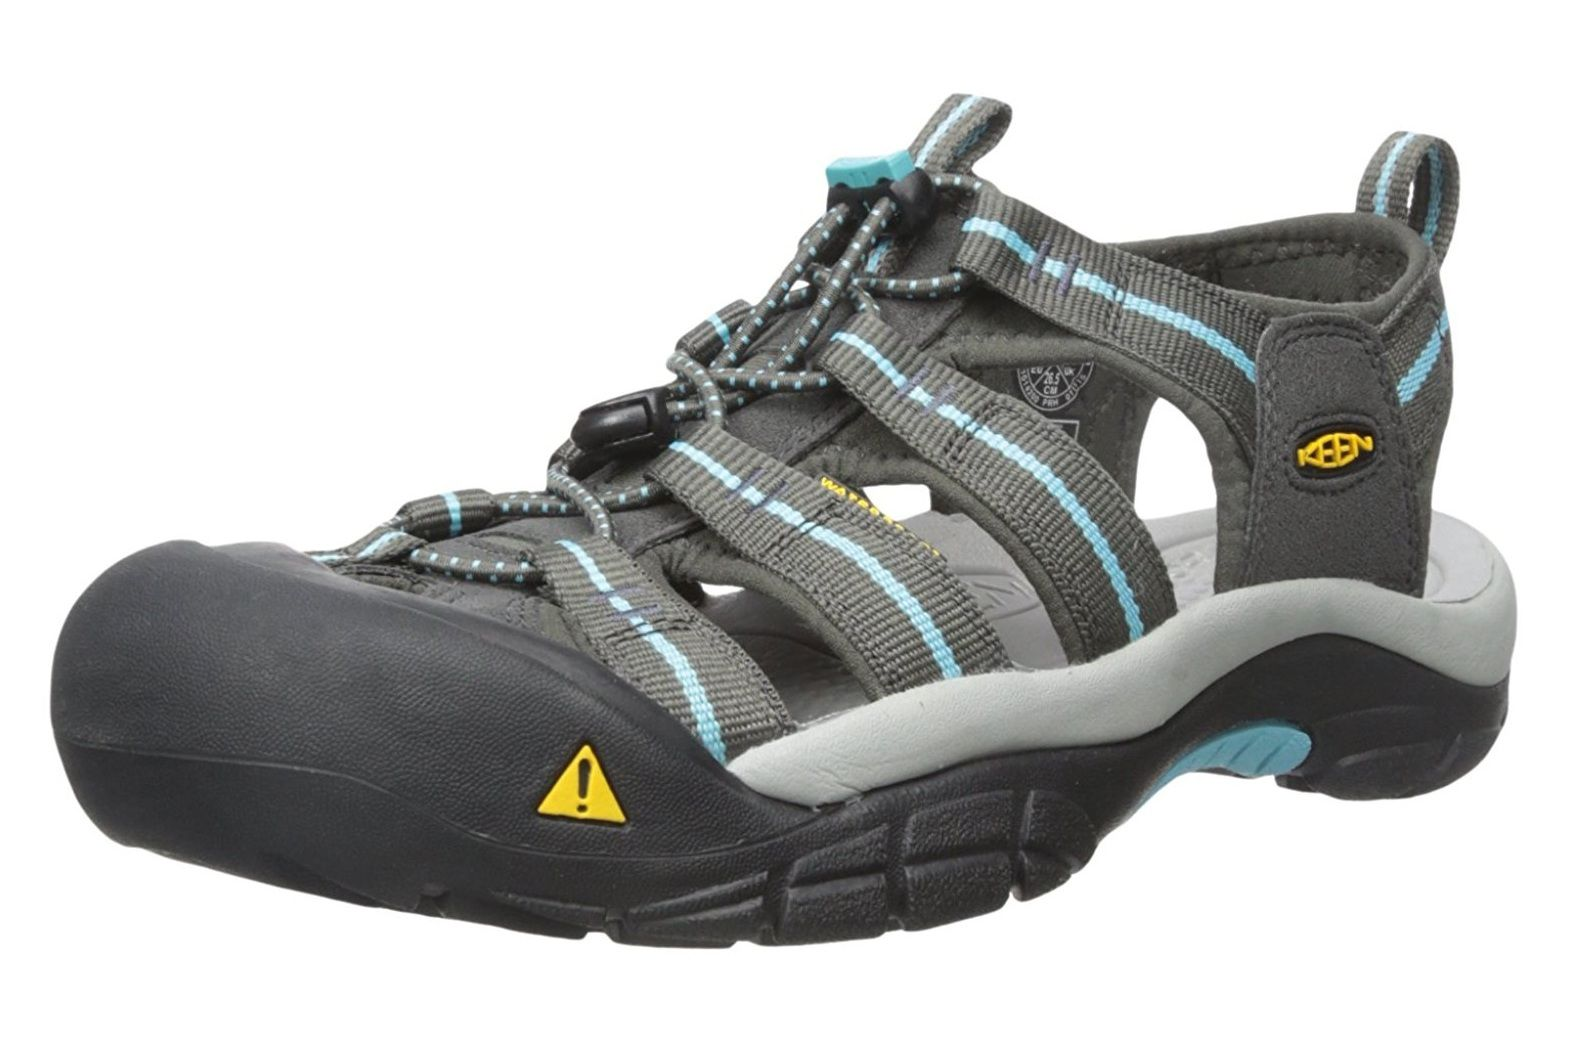 e52278c677d2 The 9 Best Walking Sandals of 2019